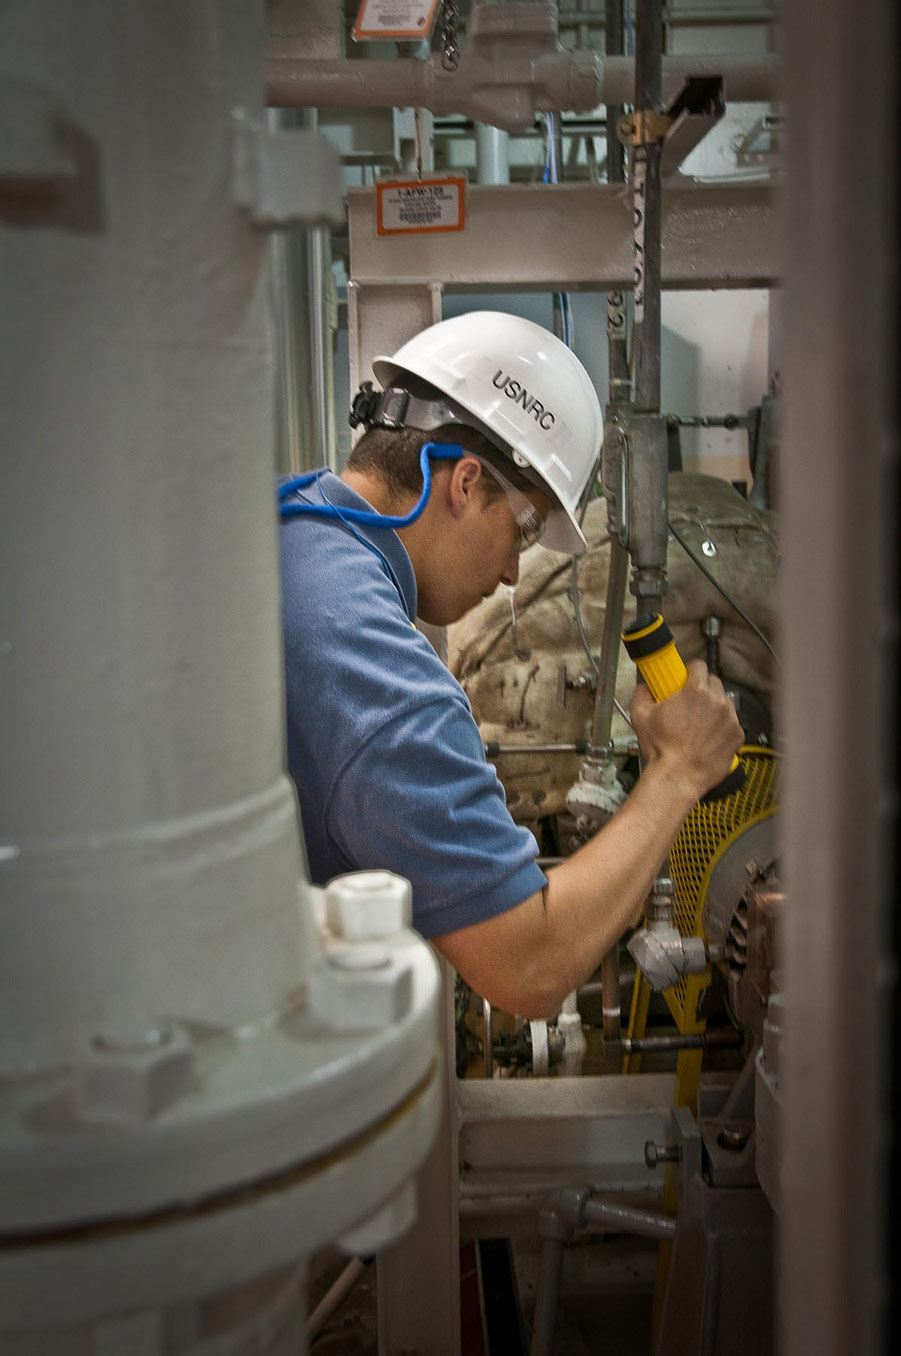 NRC Resident Inspectors perform Inspections at the Nuclear Power Plants by Nuclear Regulatory Commission, used under CC BY 2.0